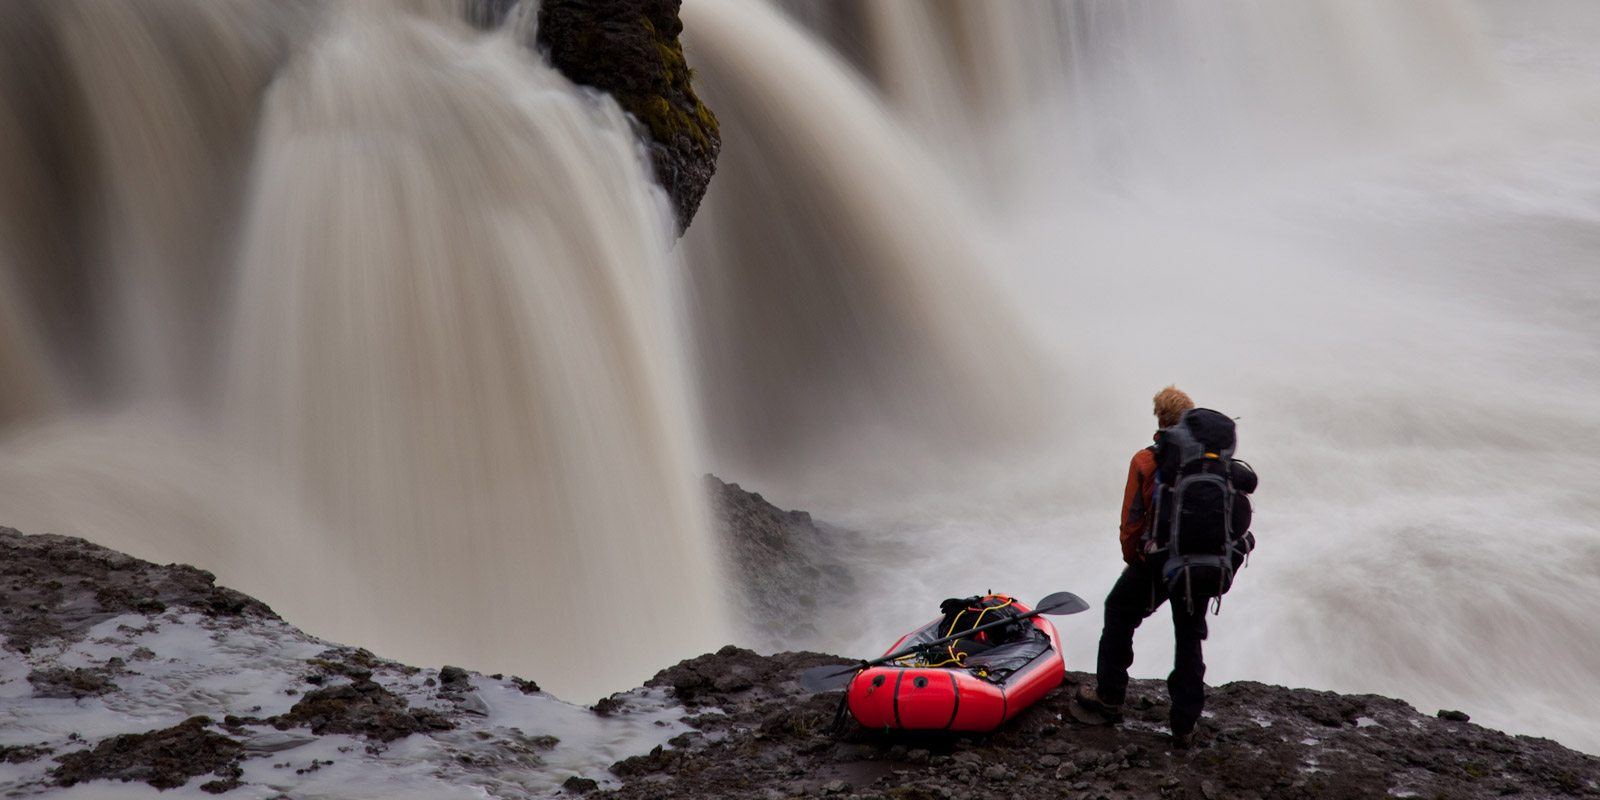 Packraft kayak expedition across Iceland